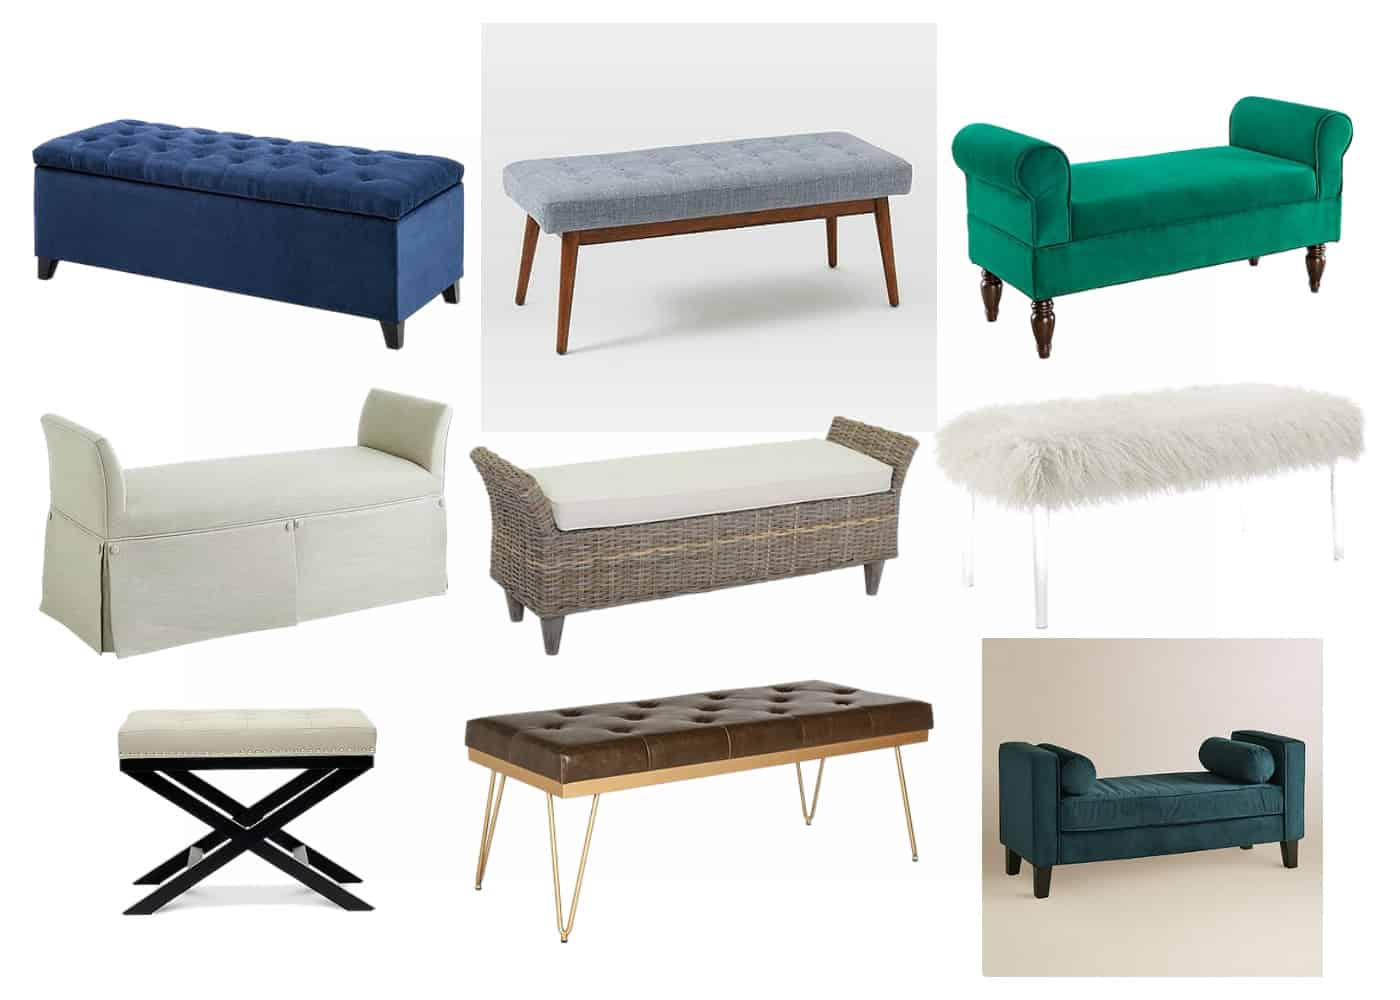 How To Choose The Best Bedroom Bench Simple Stylings